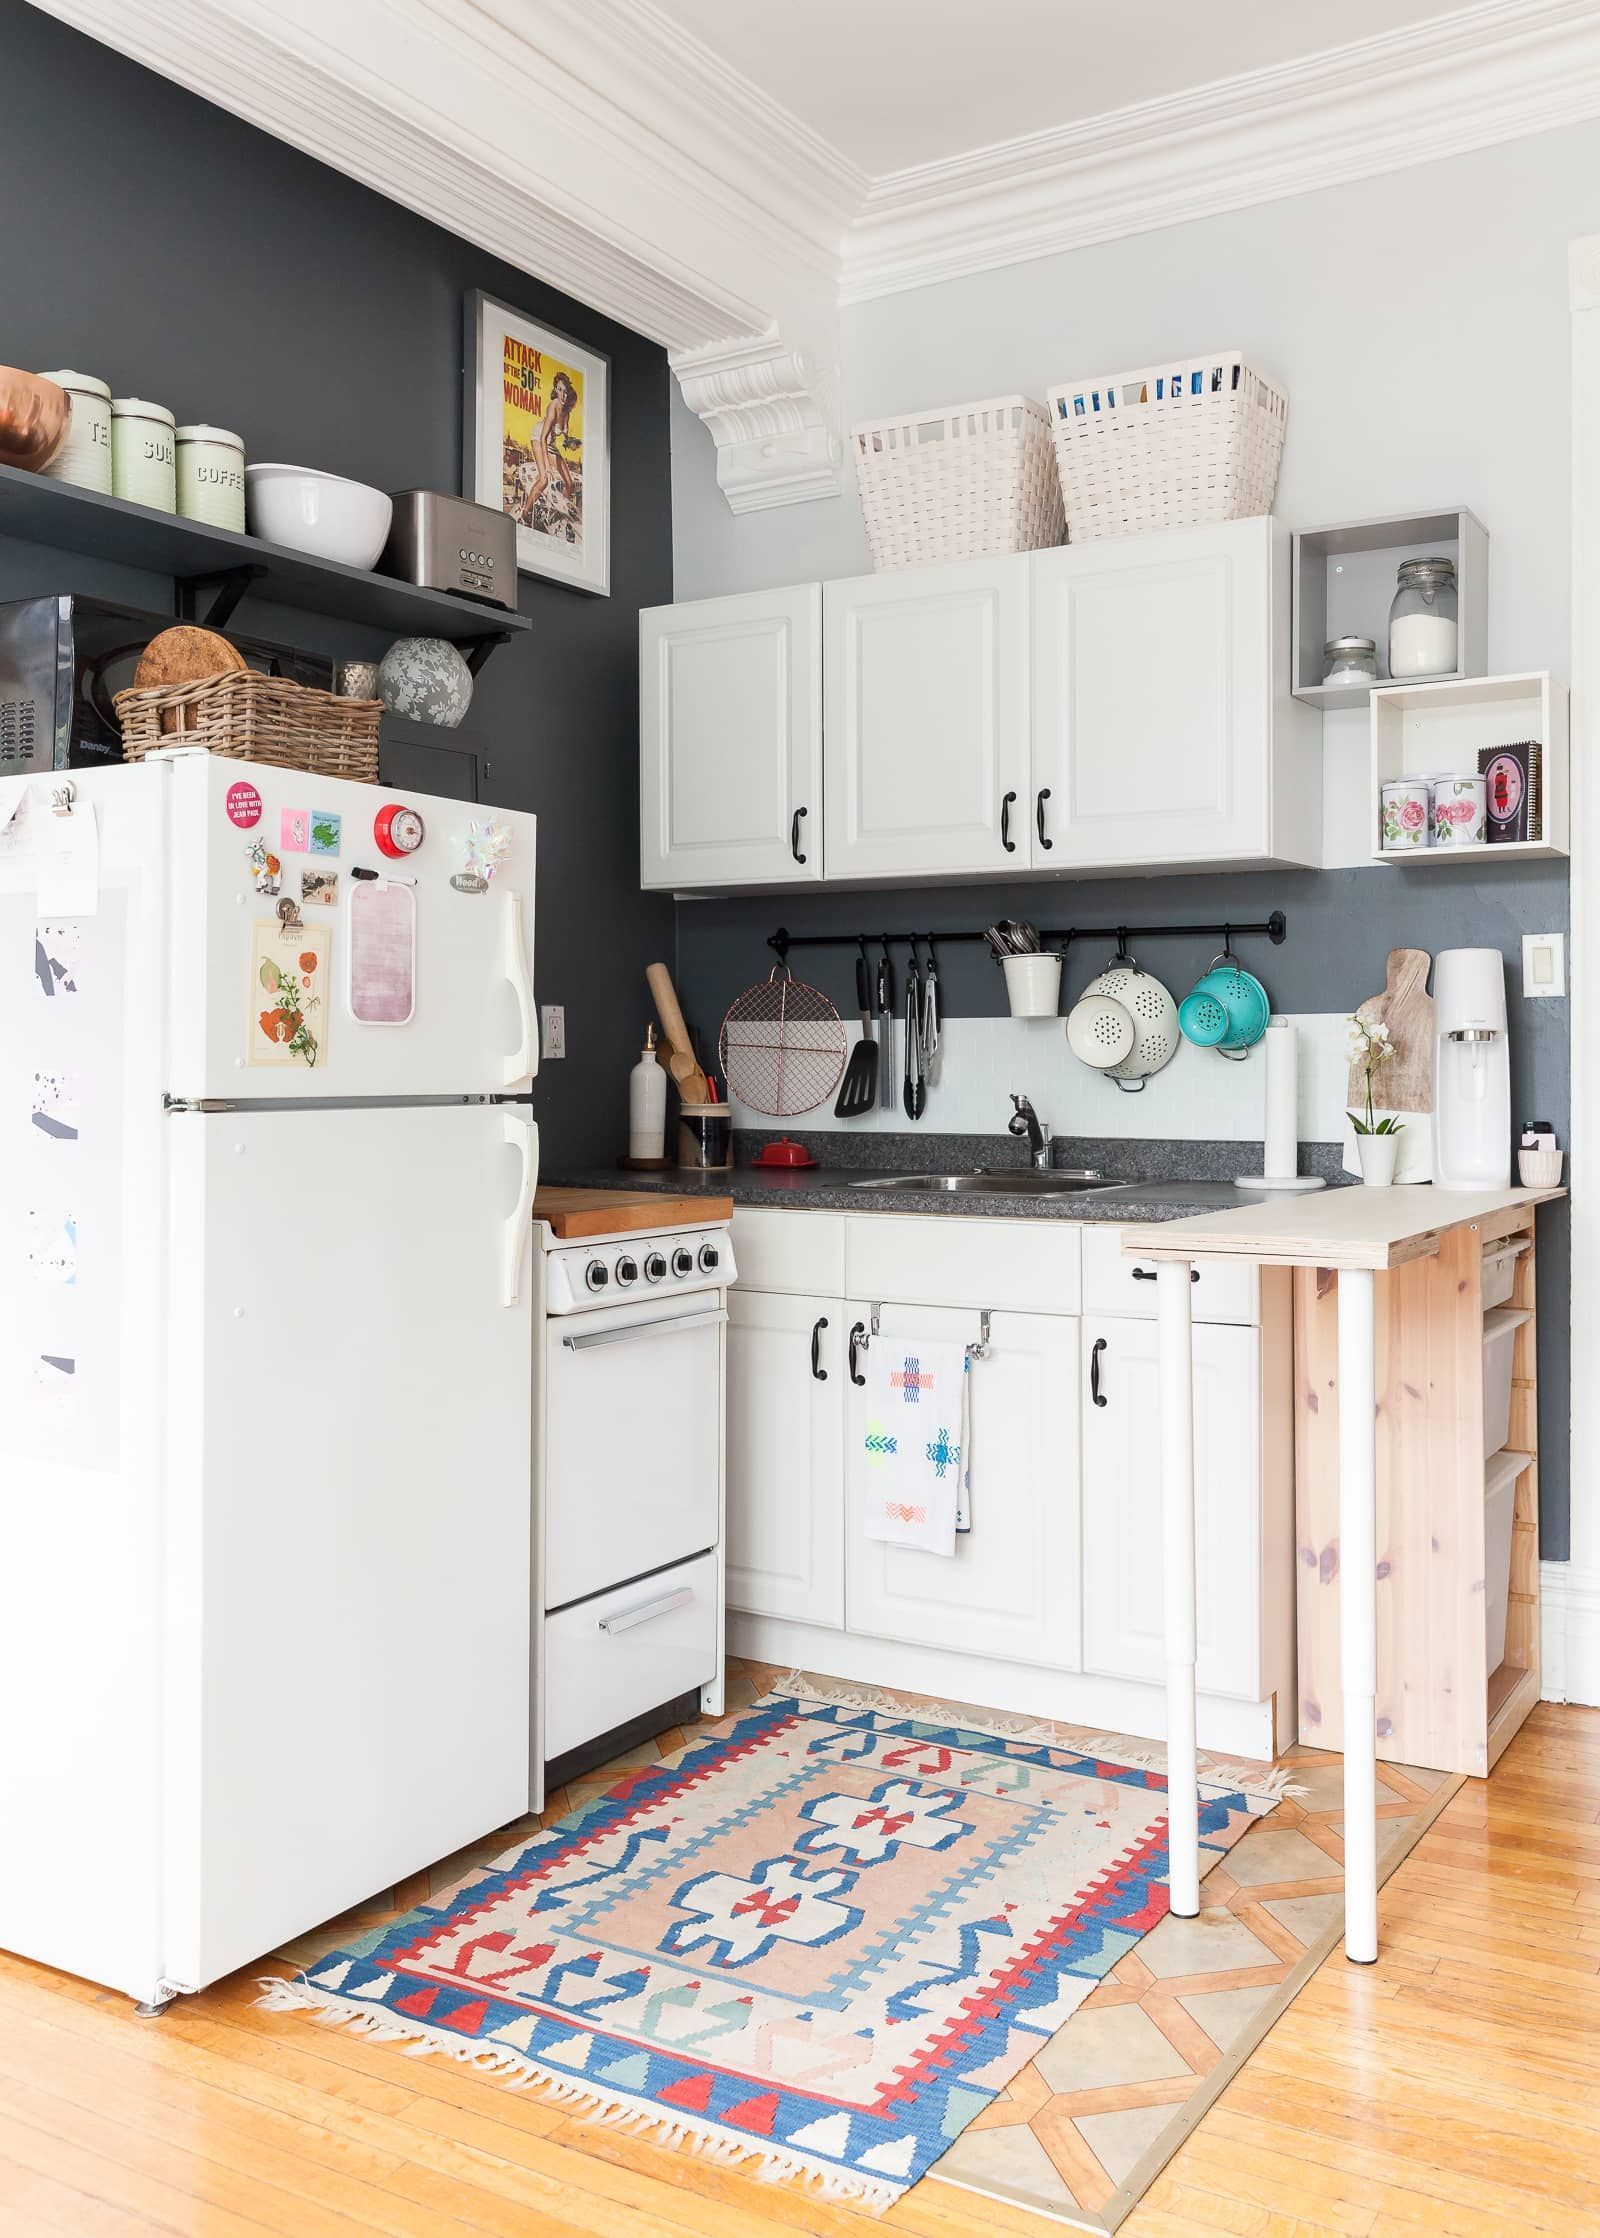 9 Simple Small Kitchen Ideas to Maximize Space [Trick & Tips ...